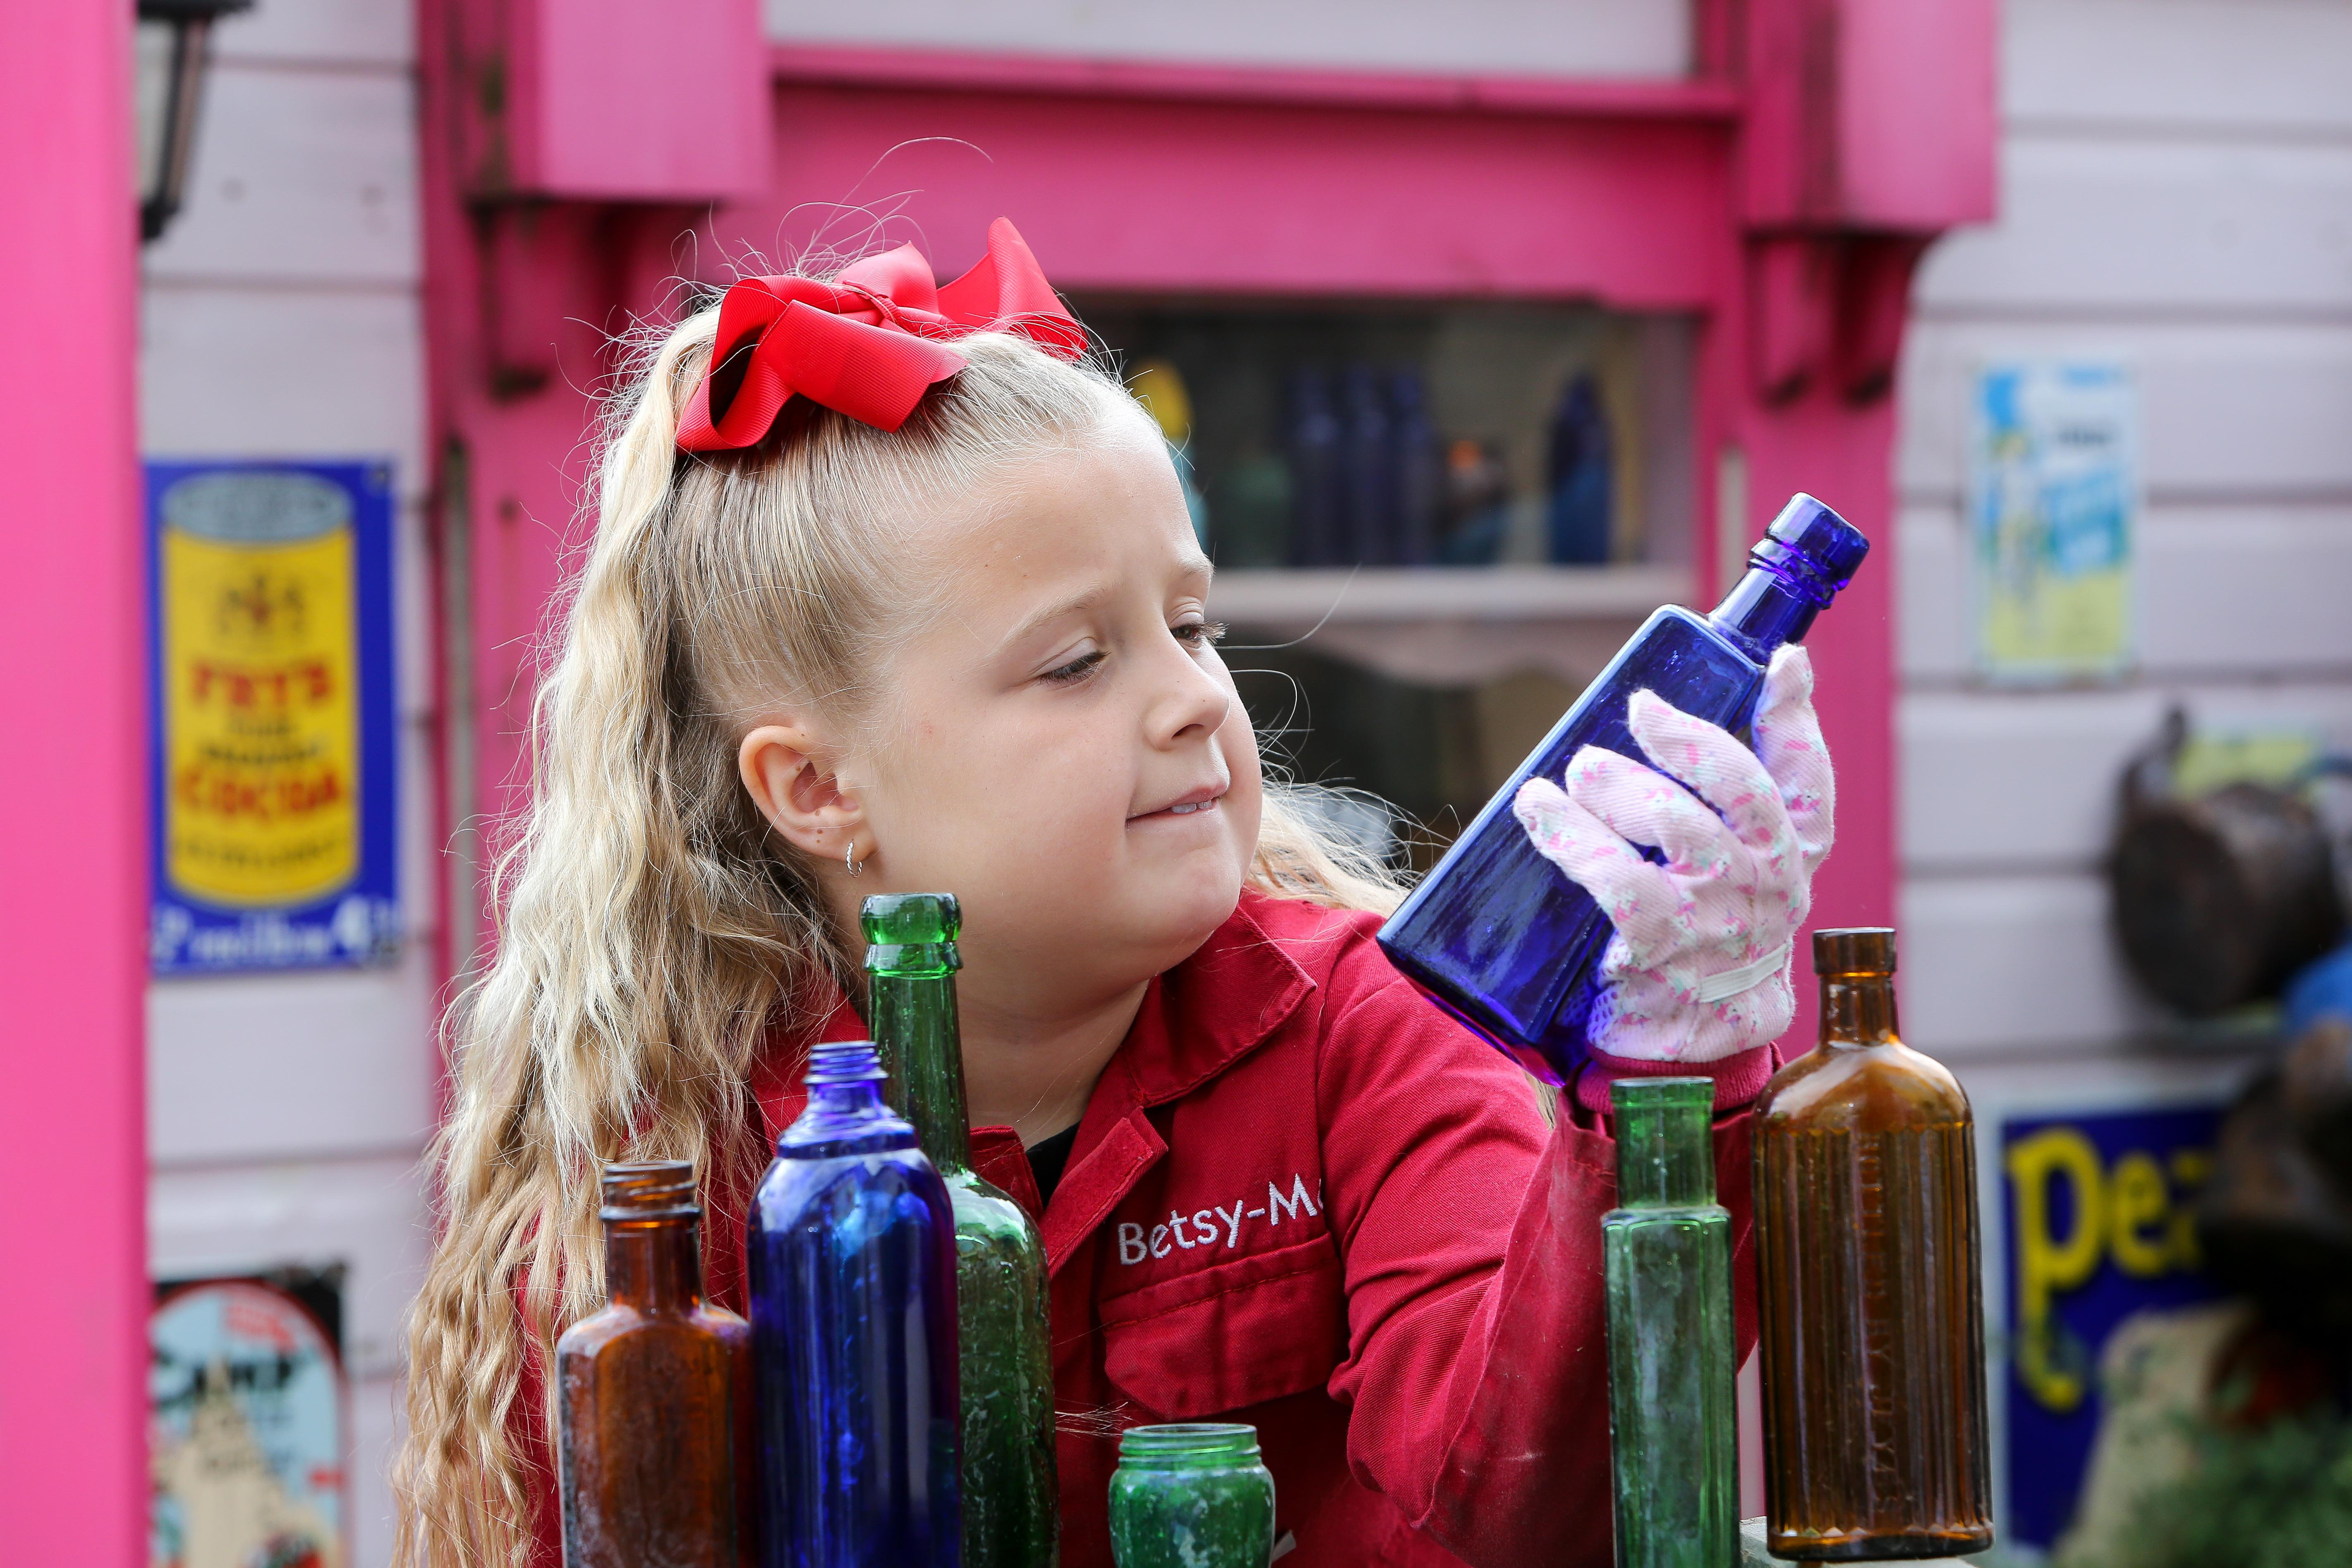 A seven-year-old schoolgirl is raking in hundreds of pounds by selling antique bottles from a little shop in her back garden - after digging them up from old landfill sites. Betsy-Mae Lloyd has been coining it in after launching her own business at her parents' home while still attending primary school.  The young entrepreneur flogs old bottles, jars and teapots - dating back to between the 1870s and 1930 - which she finds on historic landfill sites in the West Midlands.  After taking them home and cleaning them up herself, she then stores them in a Victorian-style play shed, built by dad Jason, before listing them for sale on Facebook.